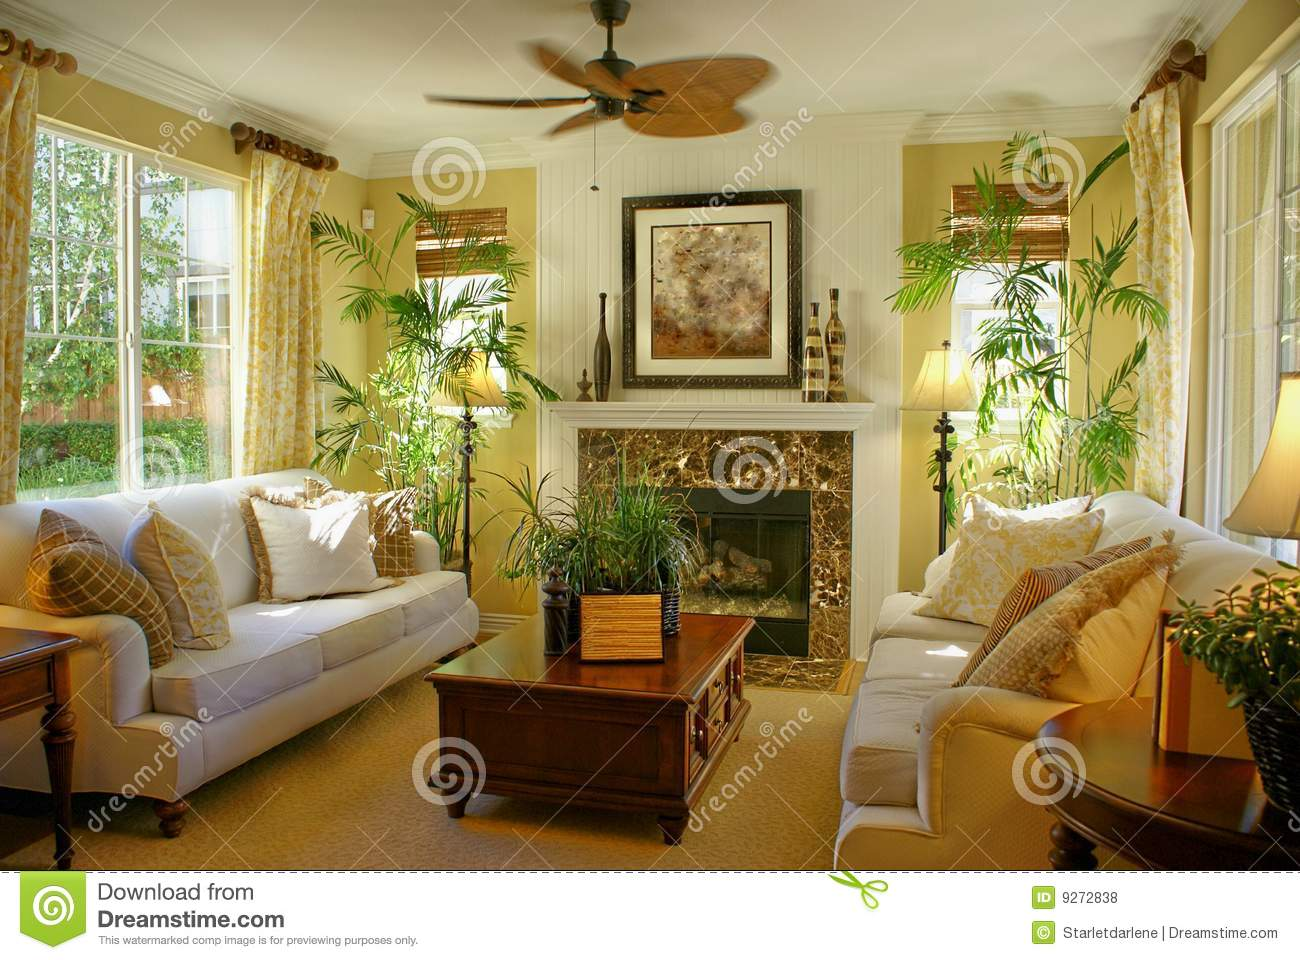 Sunny Yellow Living Room WFan Stock Photo  Image 9272838